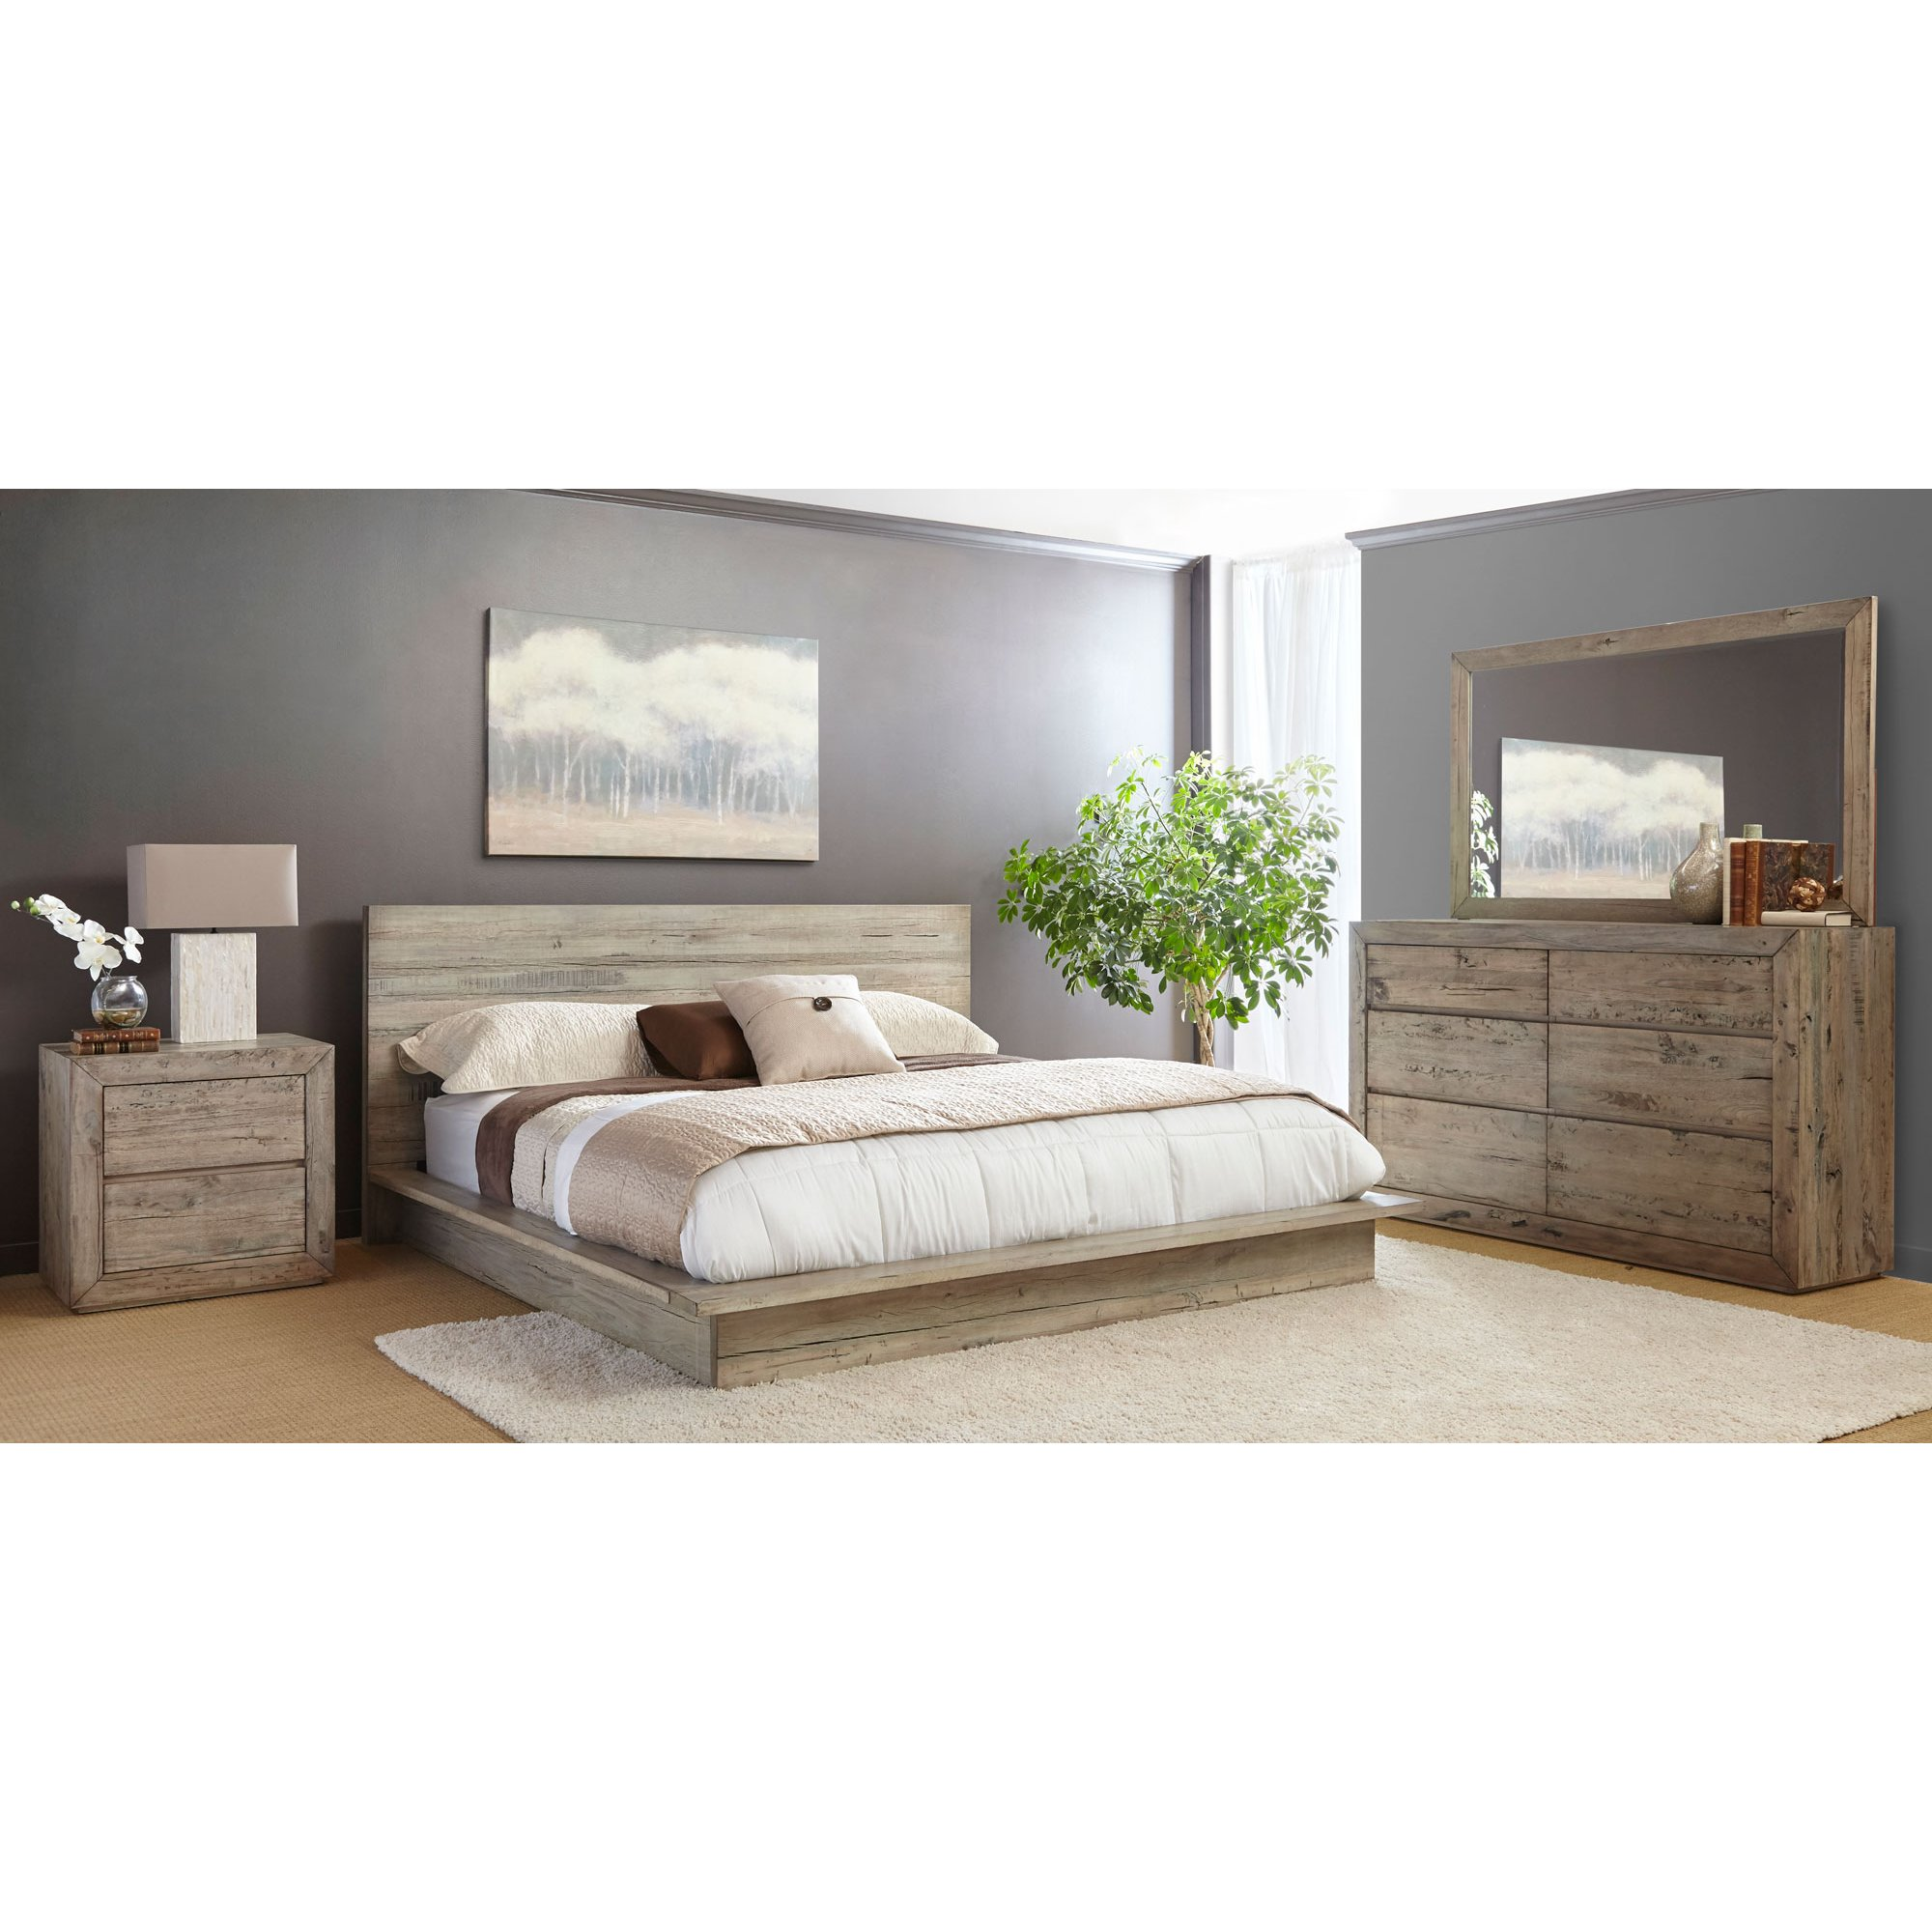 Bed Frame Sets New in Home Decorating Ideas